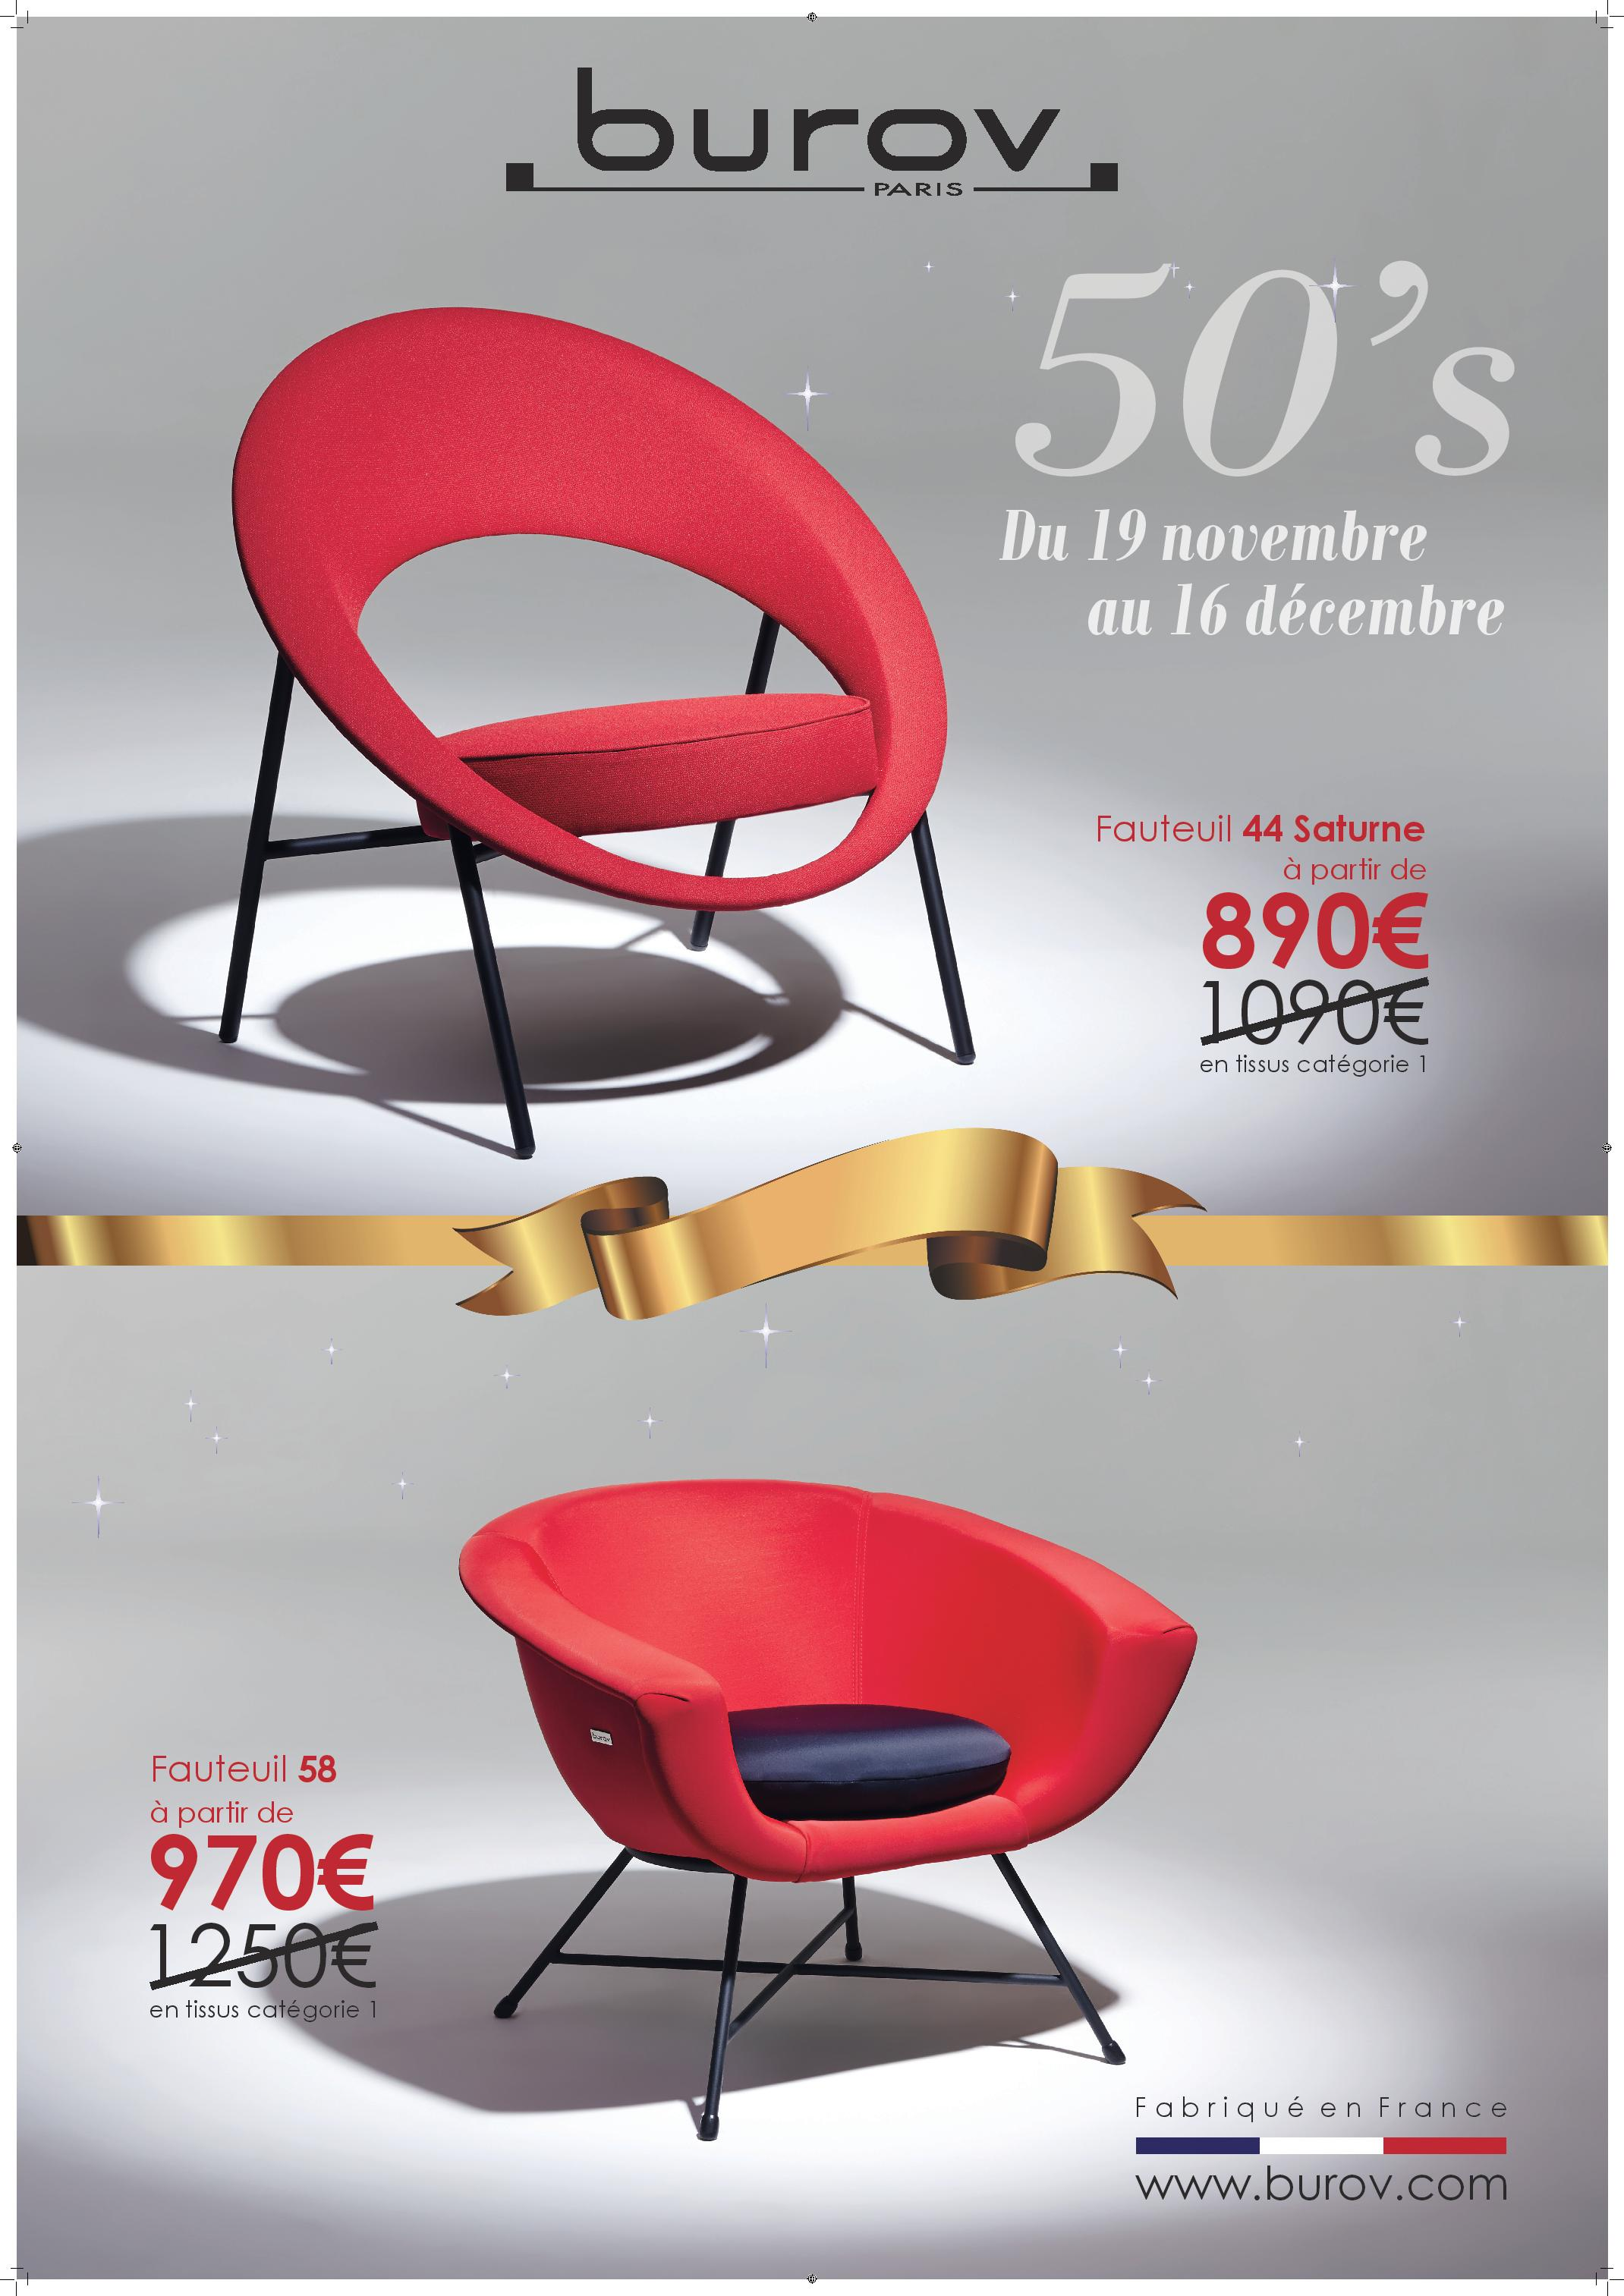 Fauteuils Montpellier Mobilier Design Montpellier Promotions Burov Rééditions Must